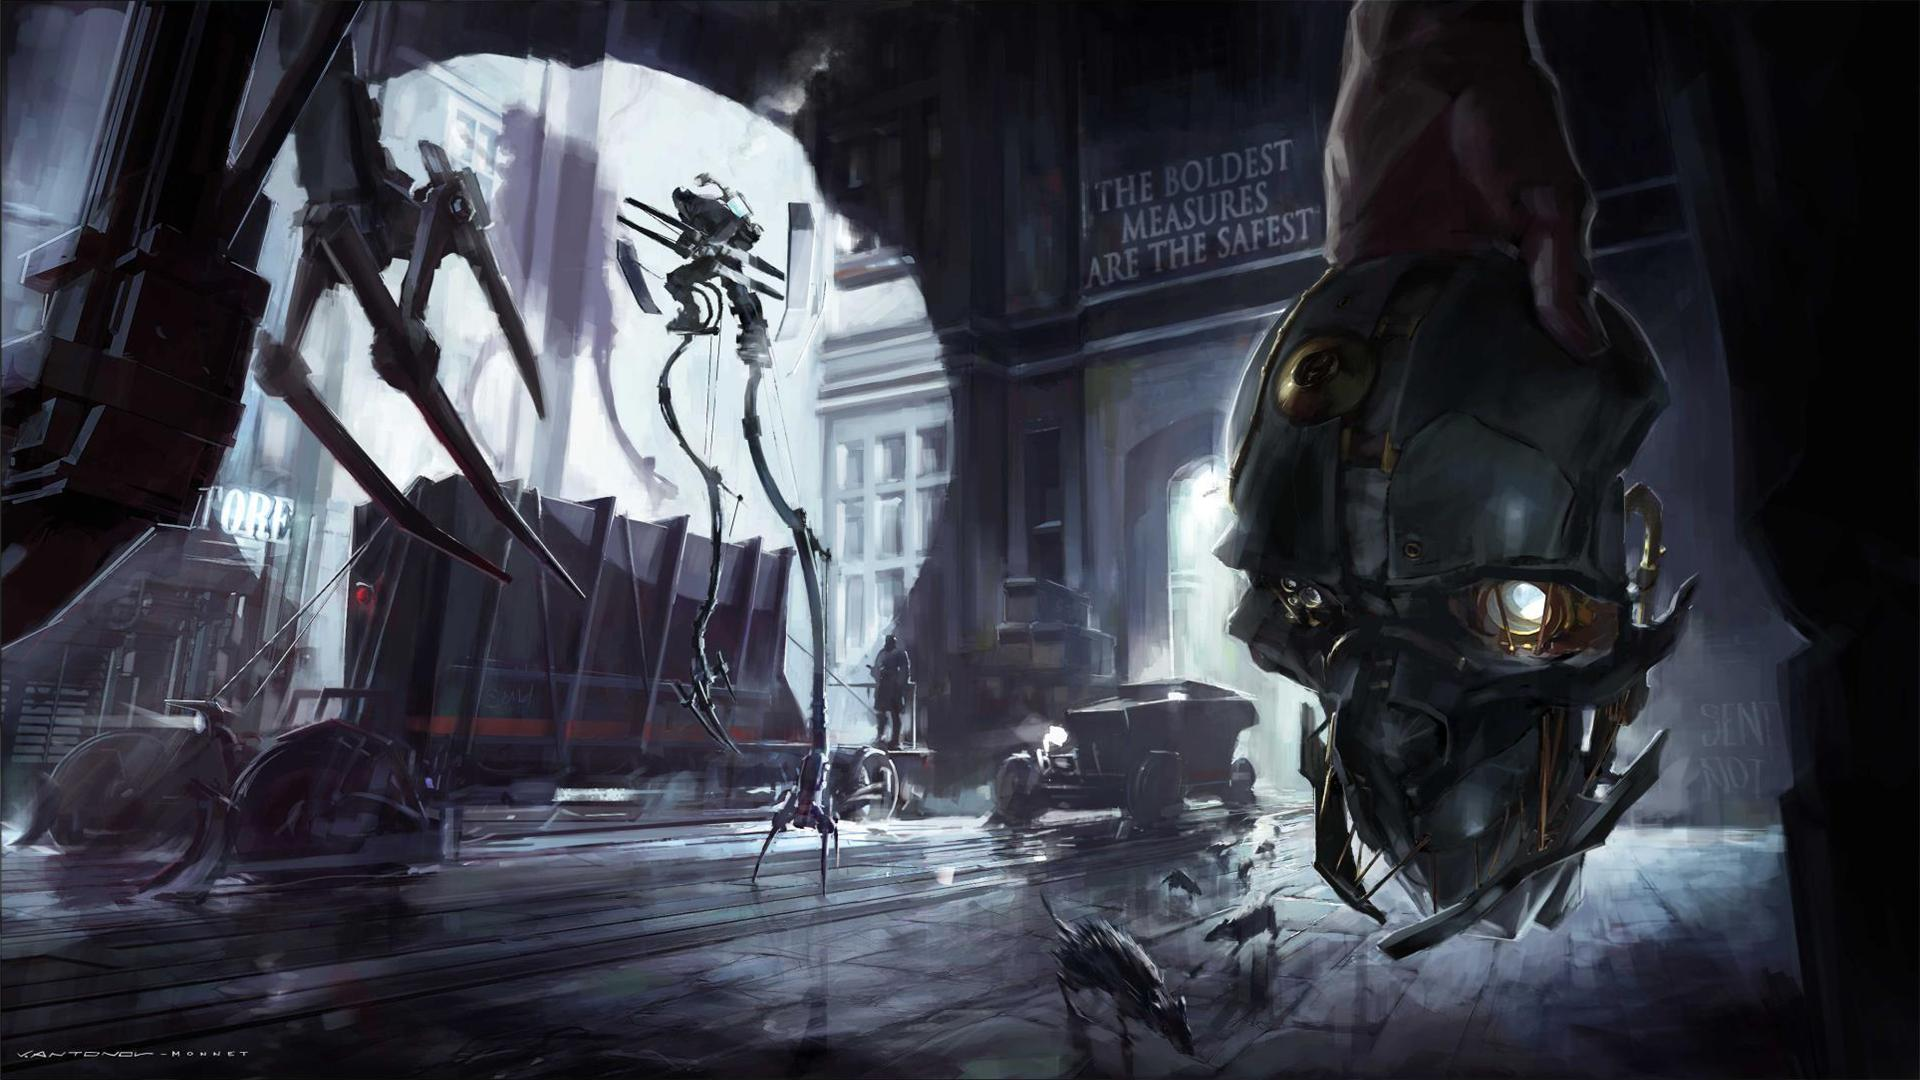 Dishonored Wallpaper 4k: 80 Dishonored HD Wallpapers